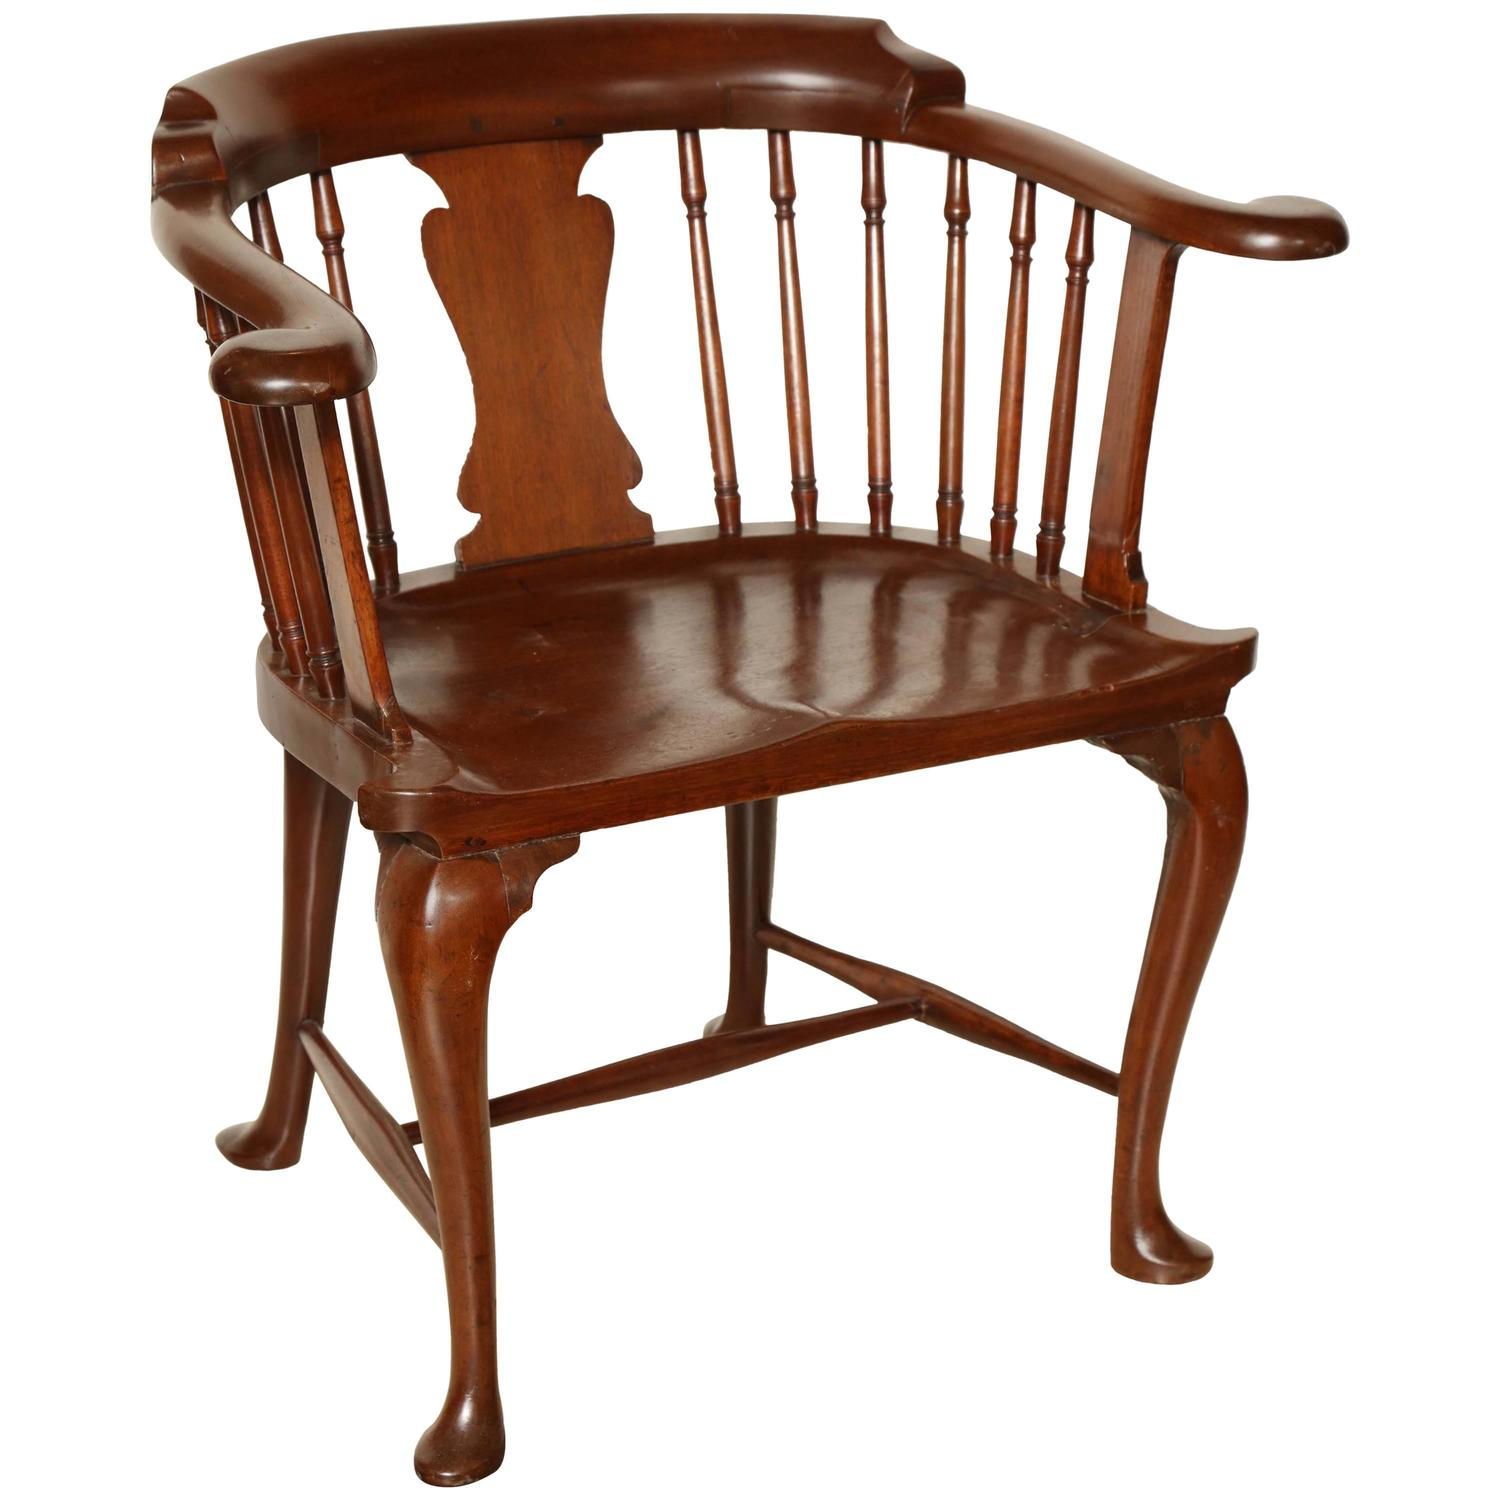 Rare Mahogany Captain s Chair For Sale at 1stdibs